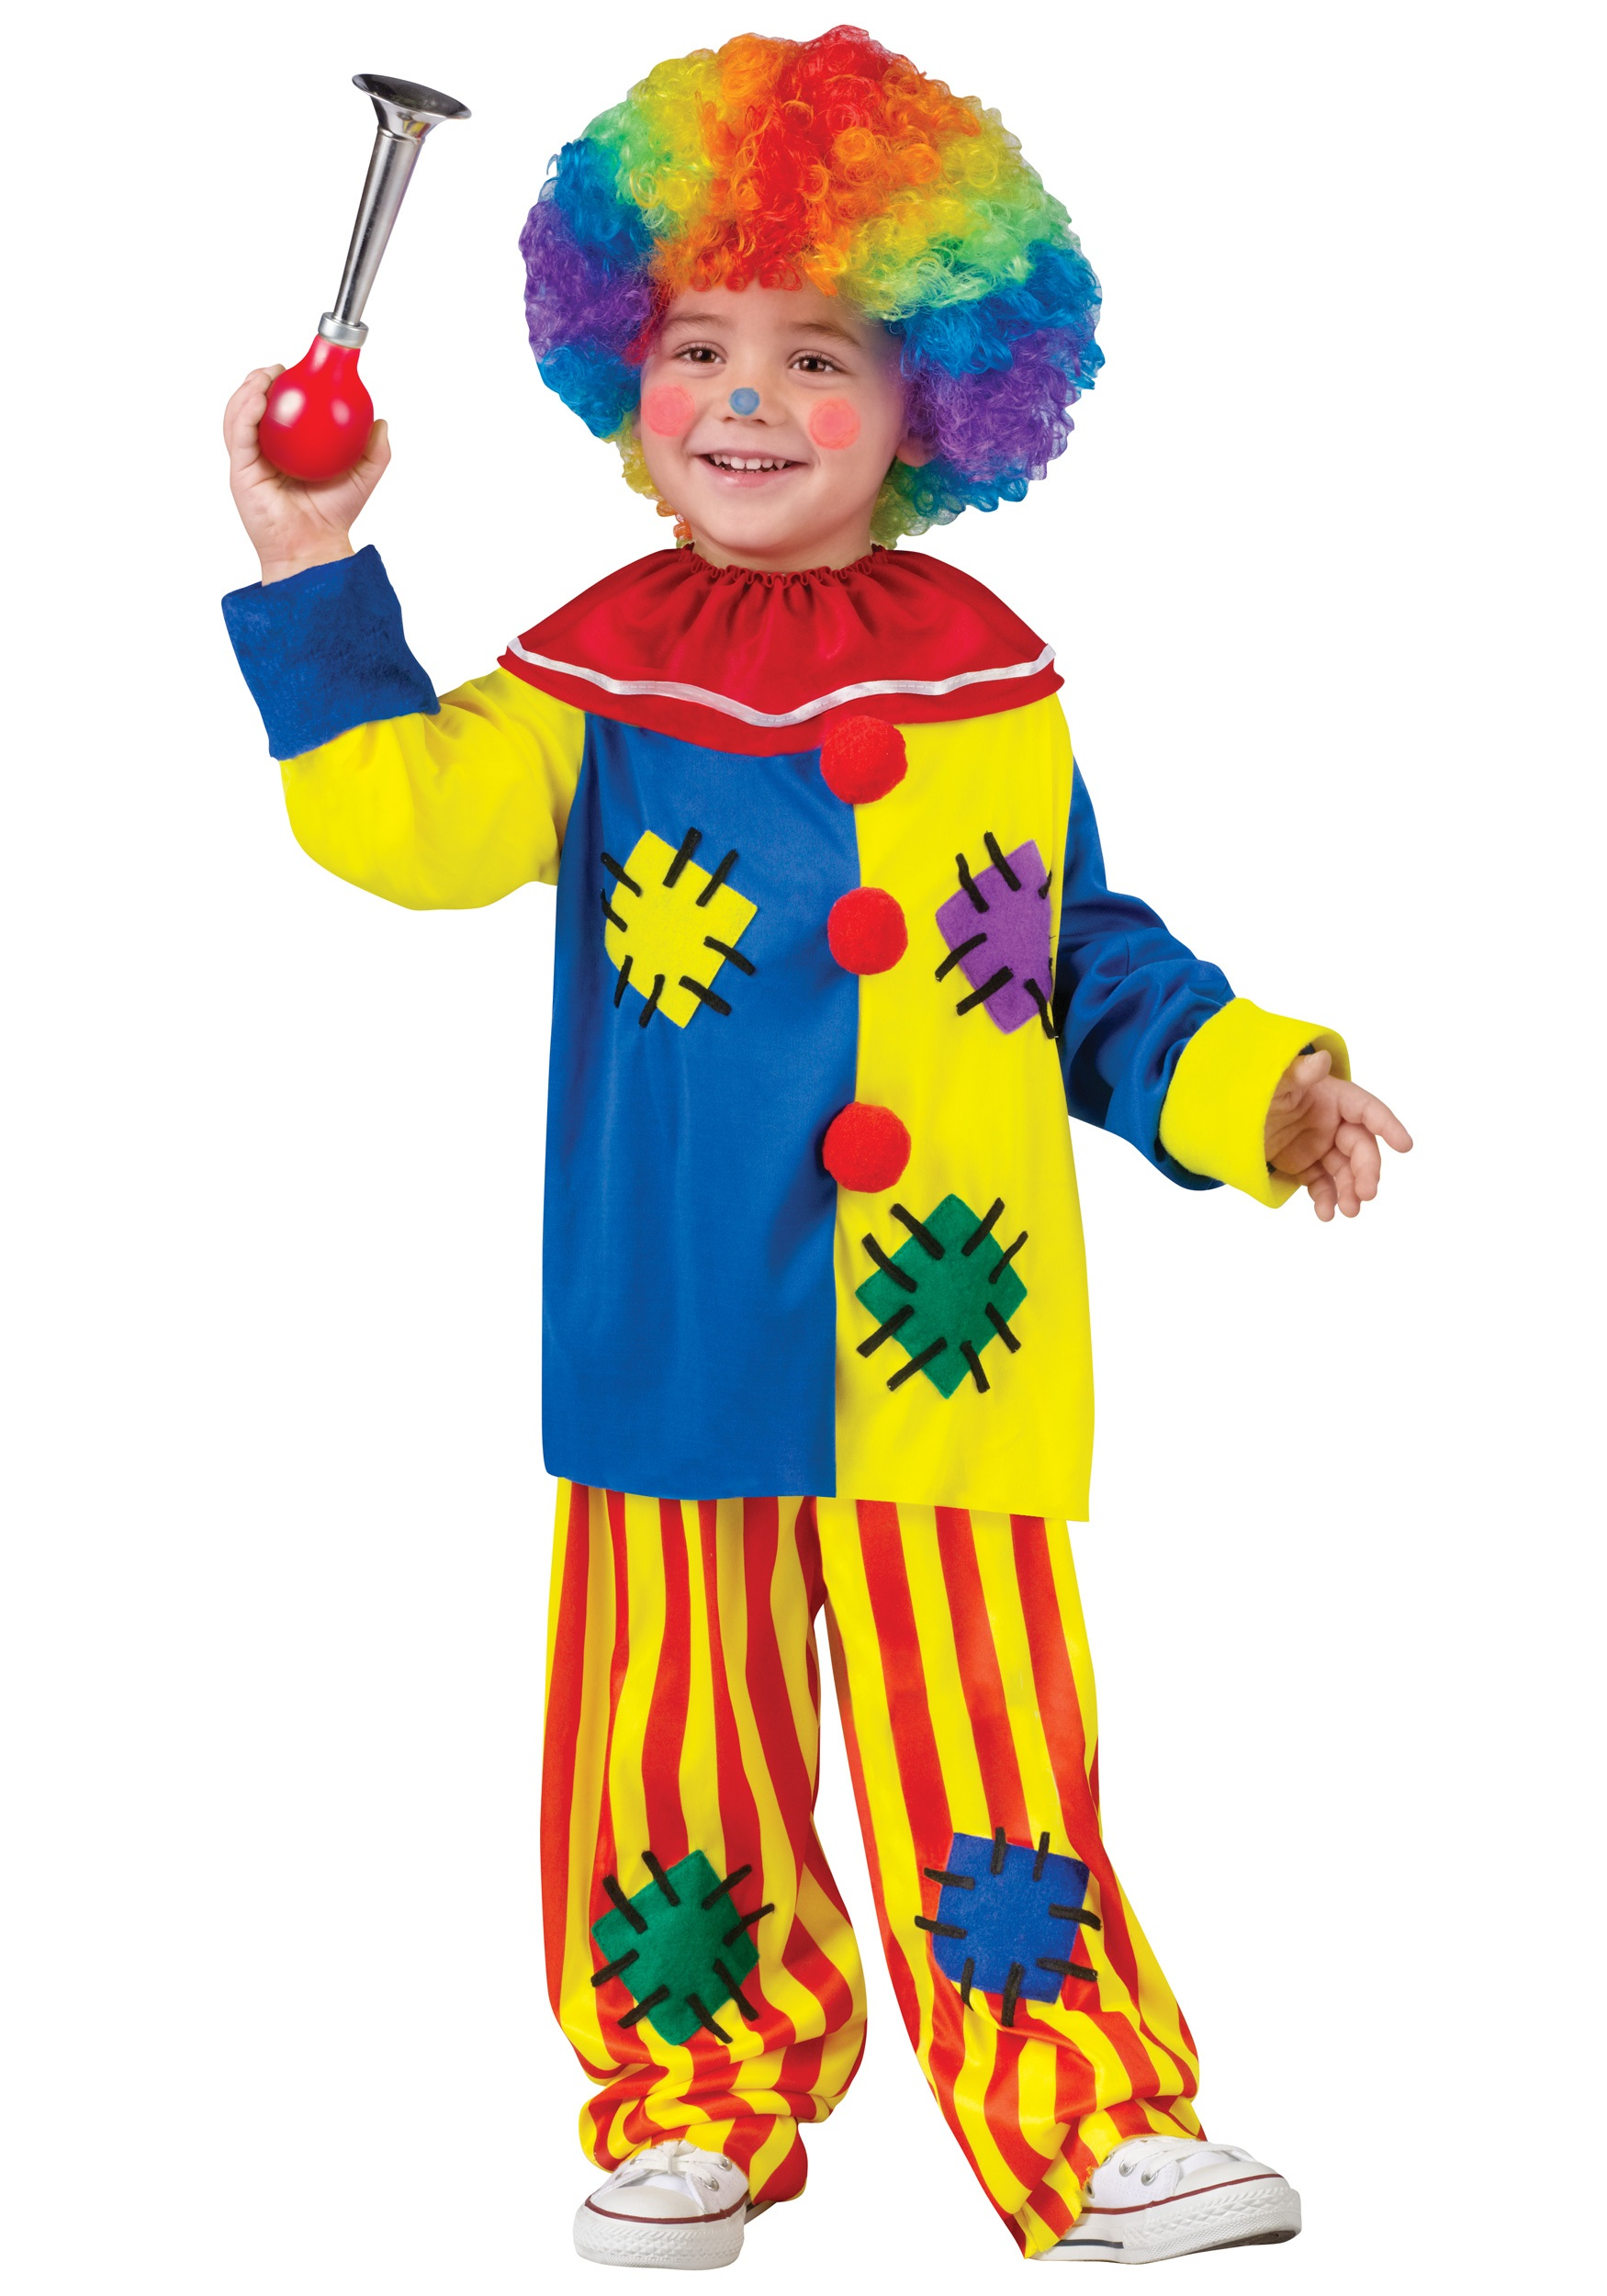 CIRCUS FAMILY COSTUME IDEAS Circus Halloween costumes Vintage Circus Costume Family costumes Costumes for men Kids Costumes (Boys) Scary boy Circus Themed Costumes Circus fancy dress Fantasy Party Vintage Circus Circus Party Children Costumes Seasons Of The Year Circus Birthday Mens Suits Family Outfits.